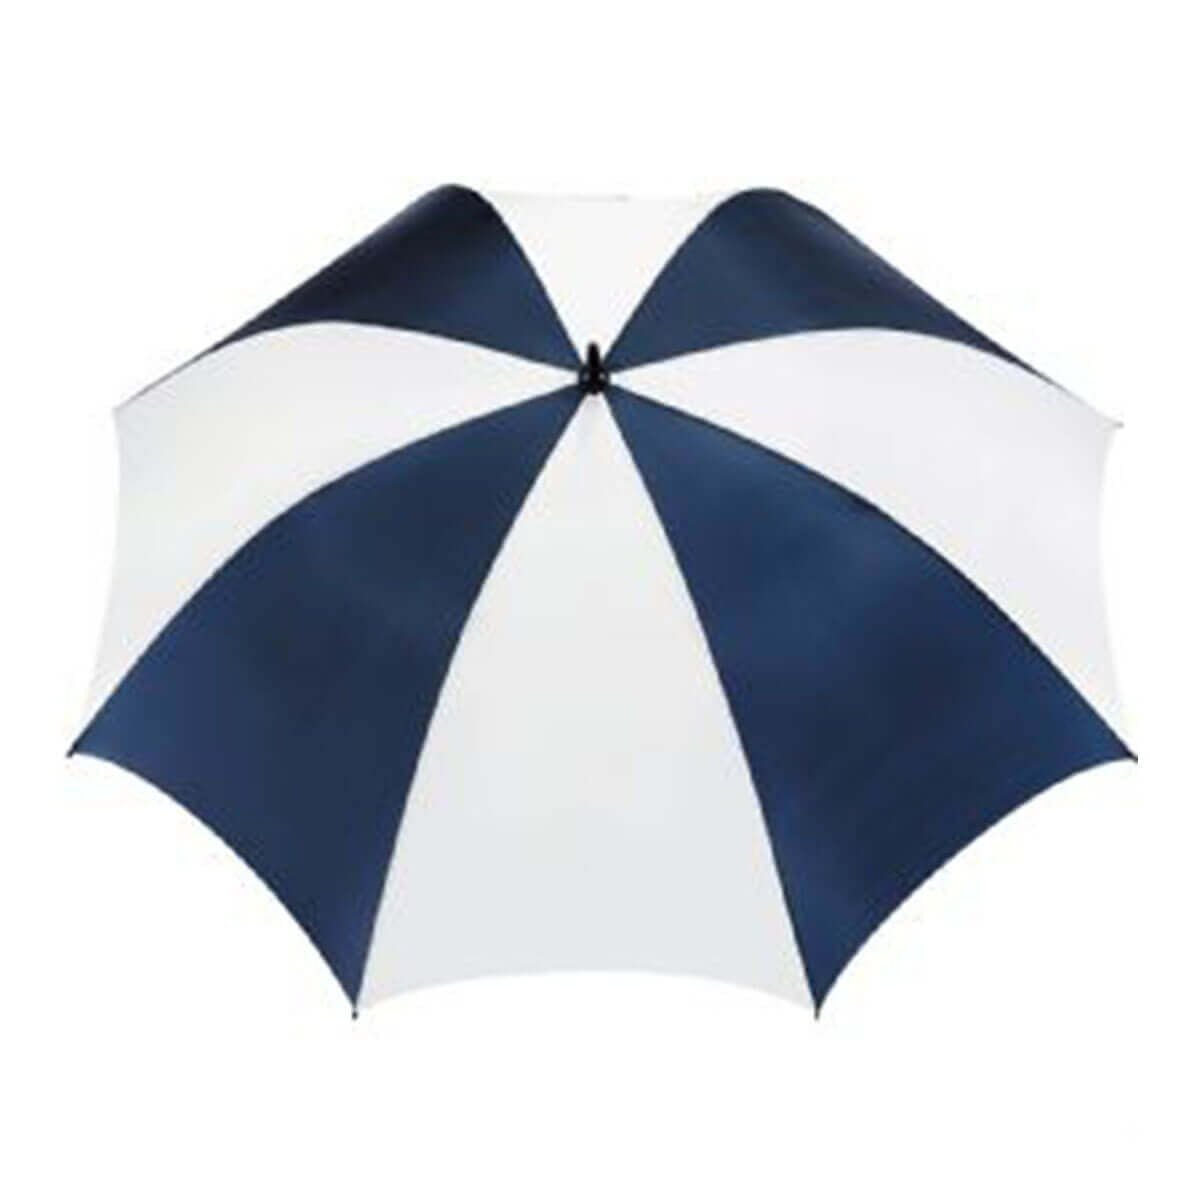 Tour Golf Umbrella-Navy & White.